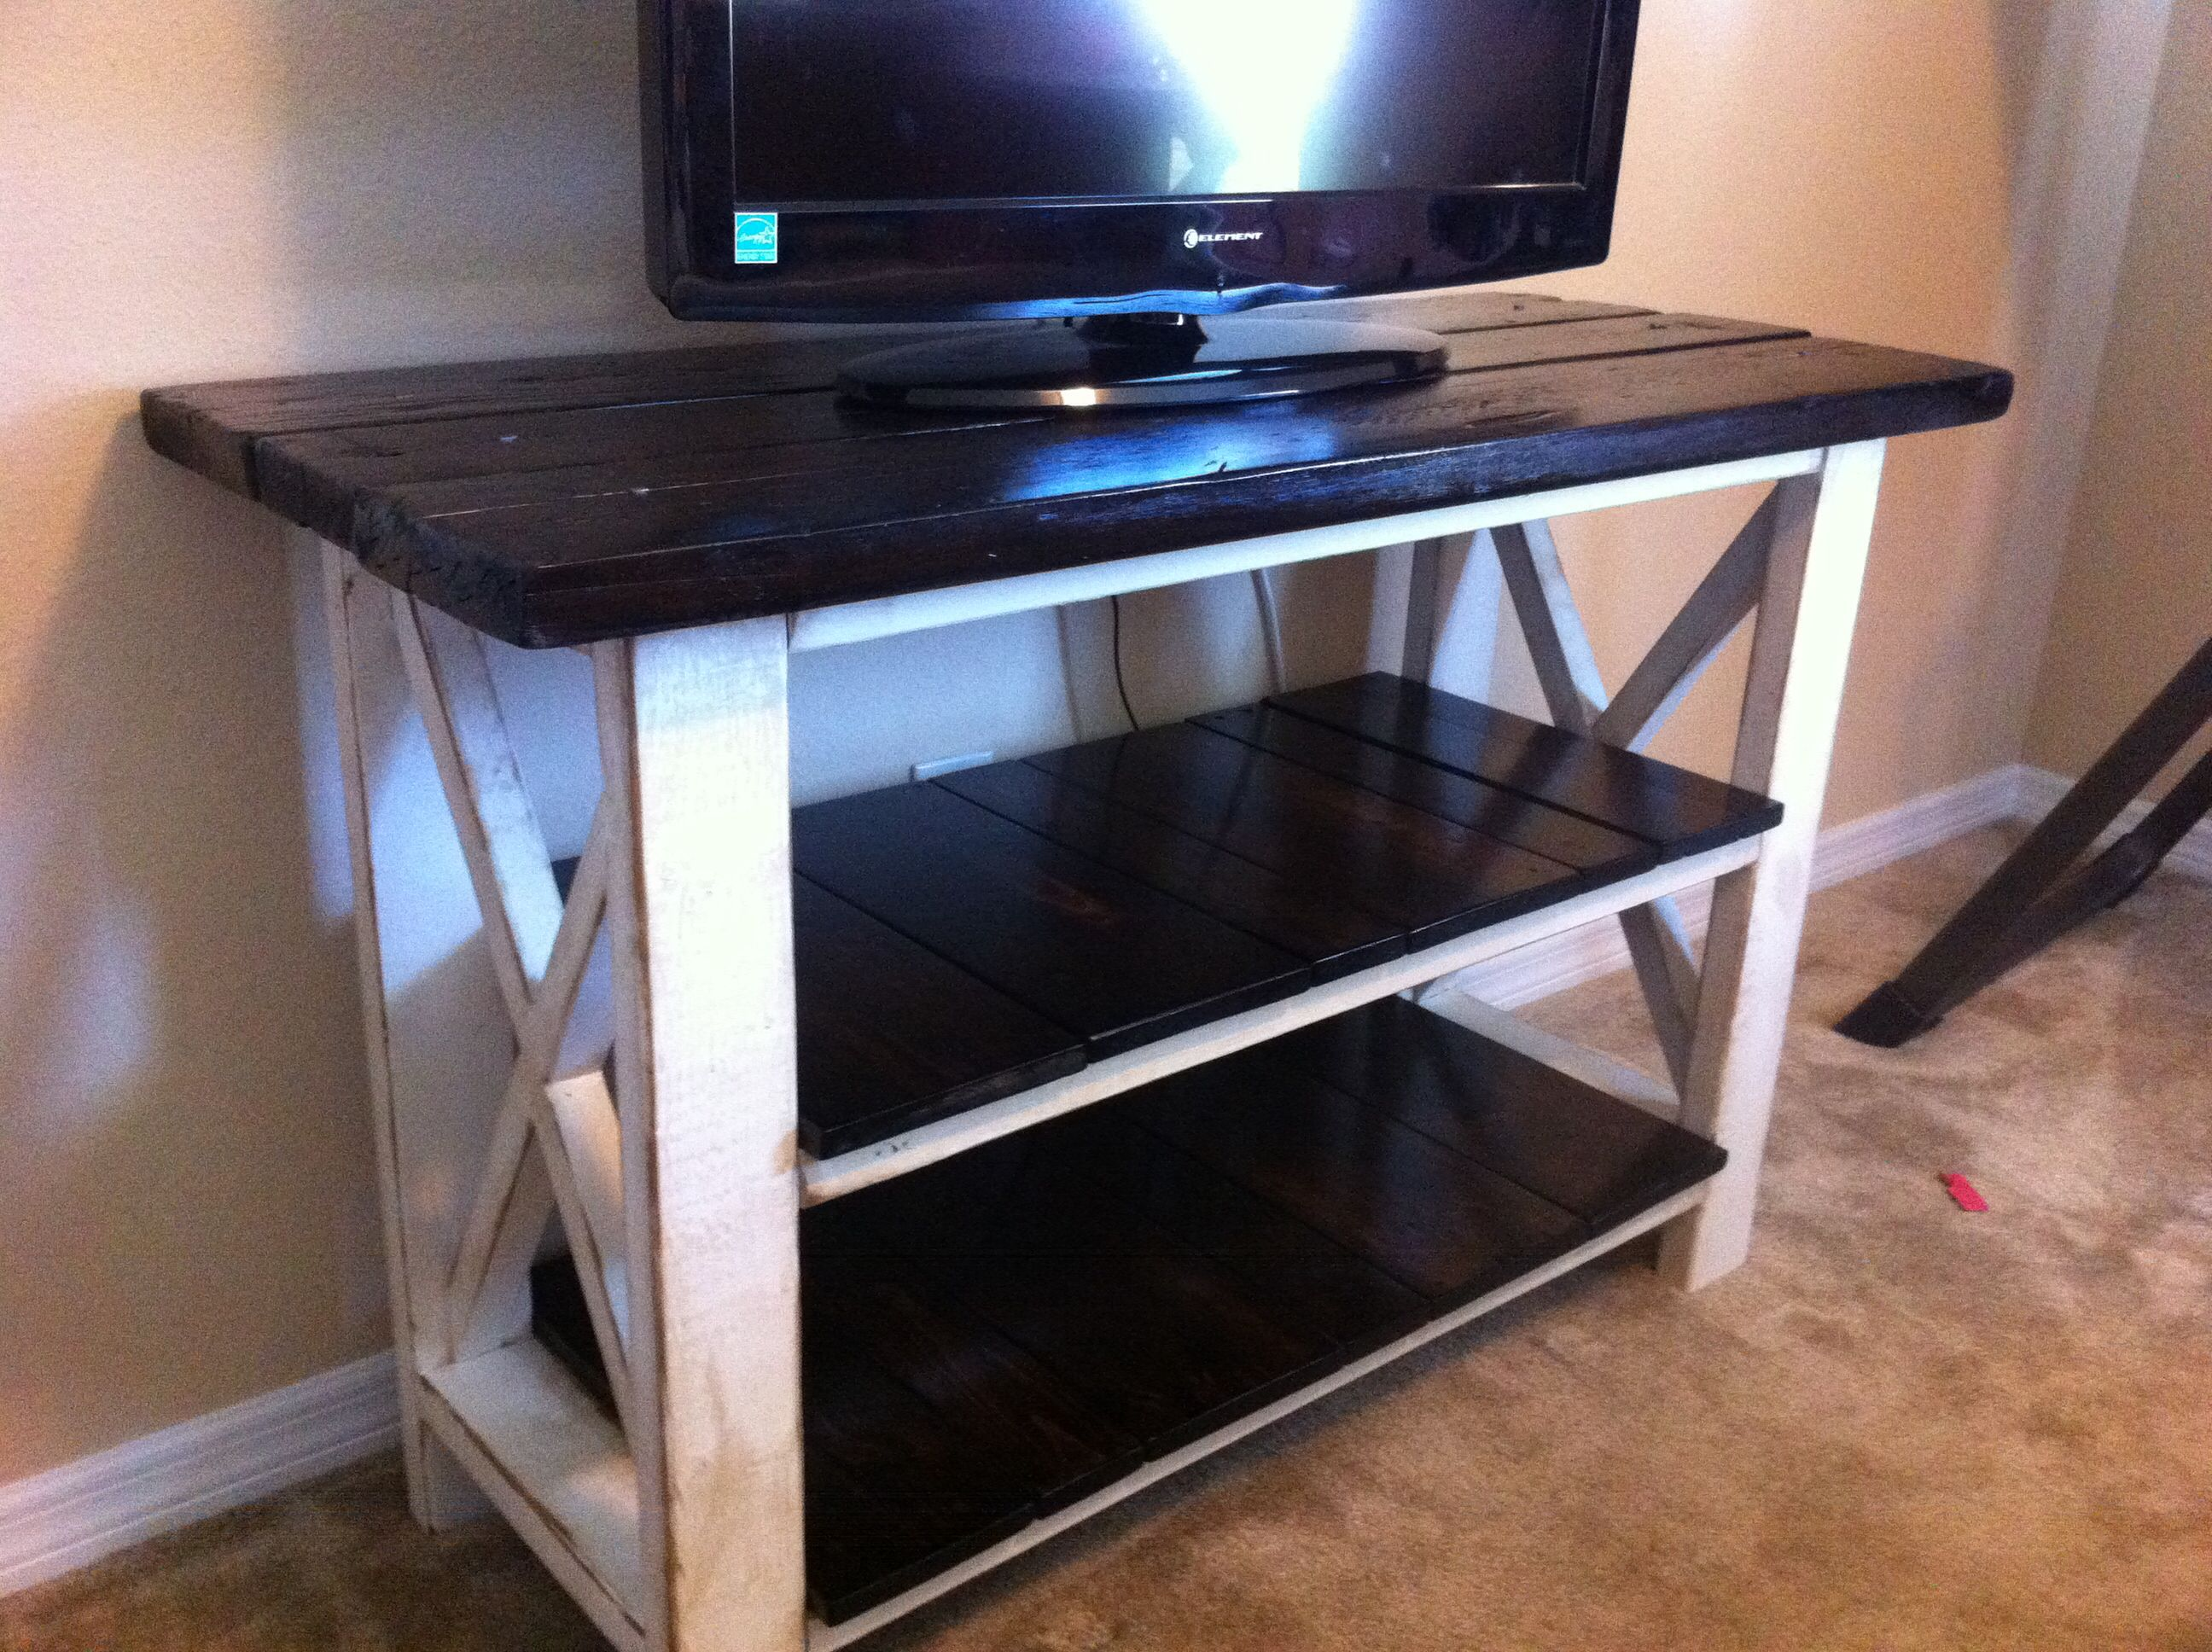 X console table built from ana whites plans with some modification